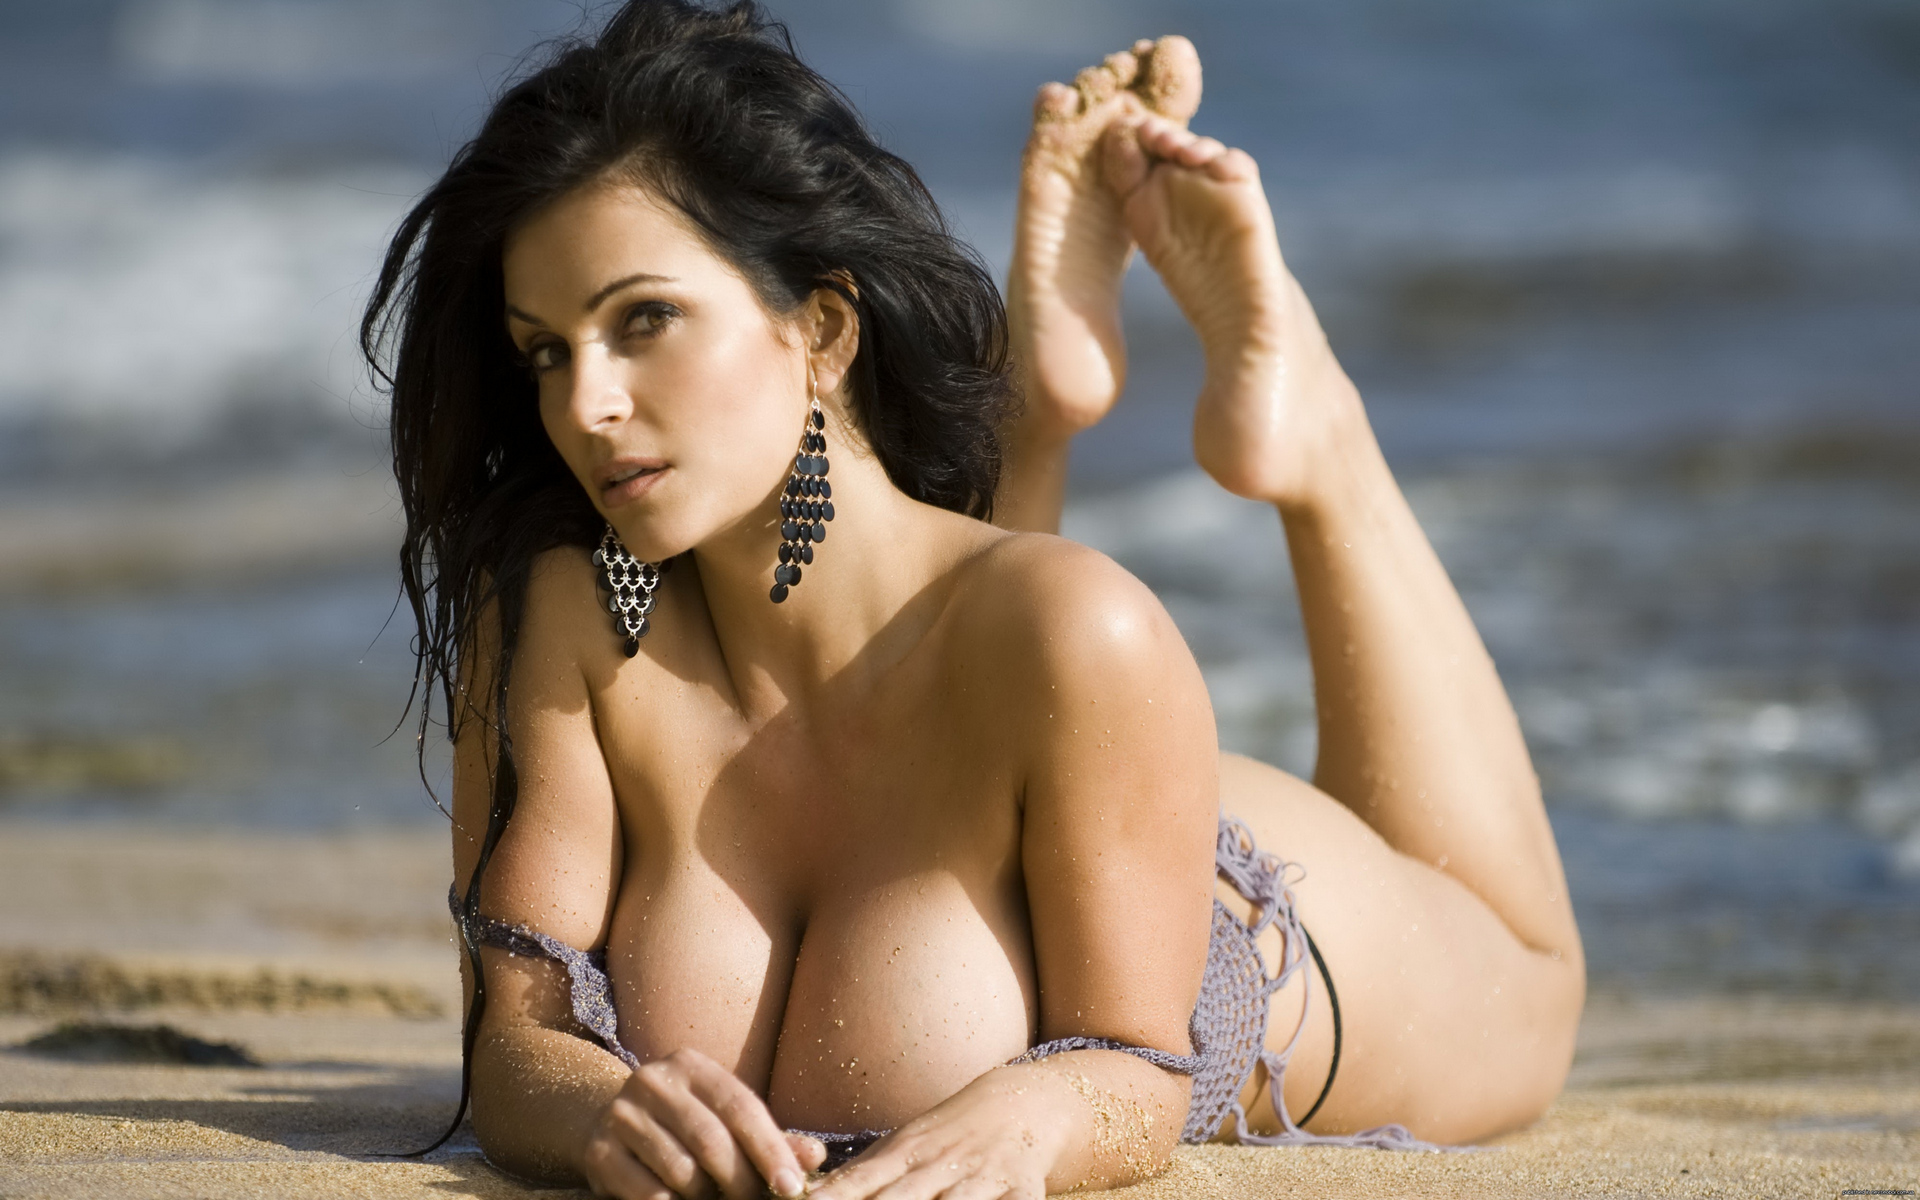 Denise milani nude, topless pictures, playboy photos, sex scene uncensored